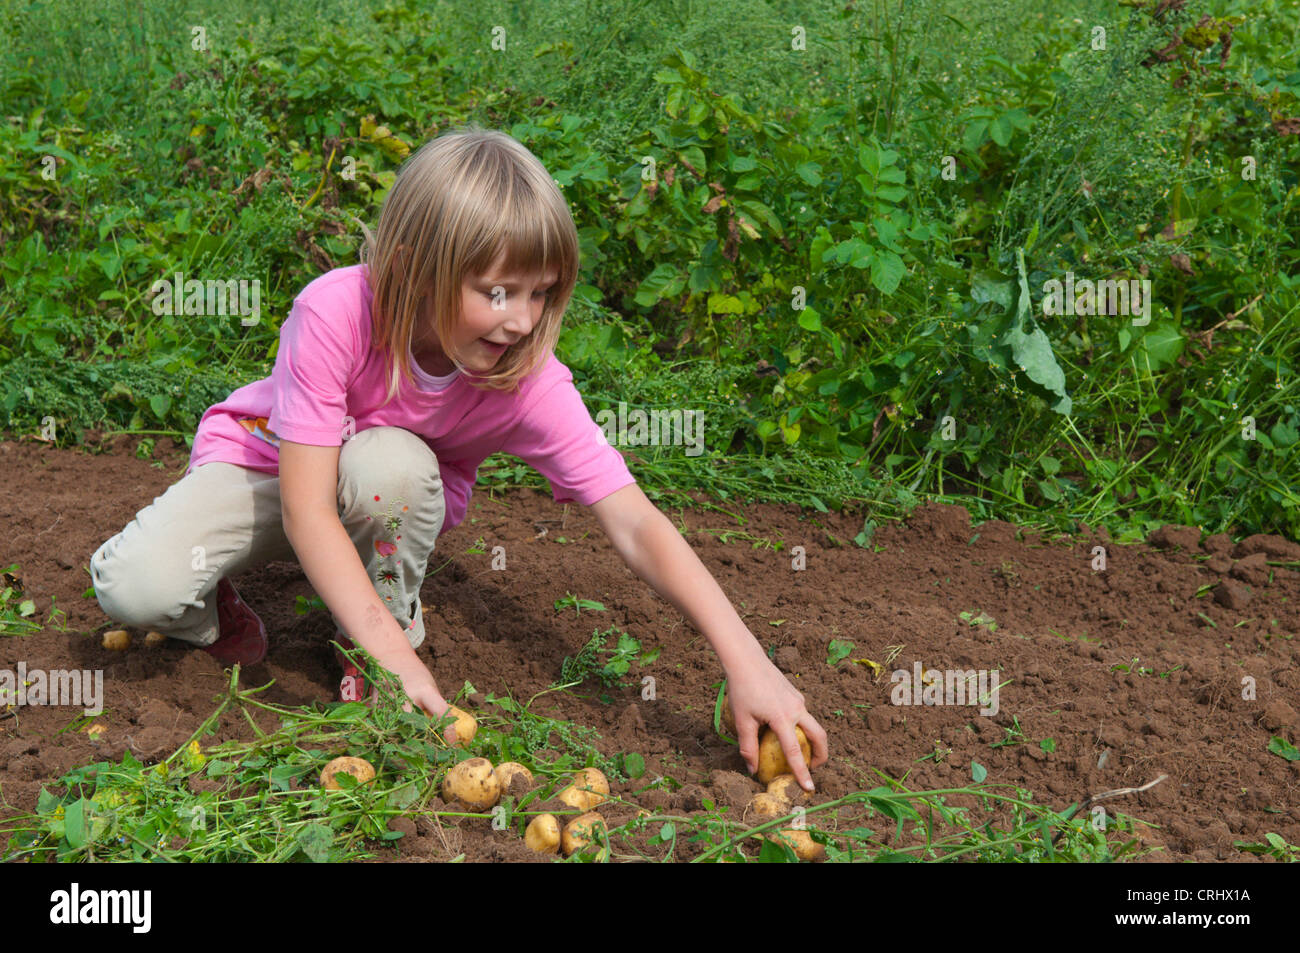 small girl havesting potatoes on an acre, Germany, Saarland - Stock Image